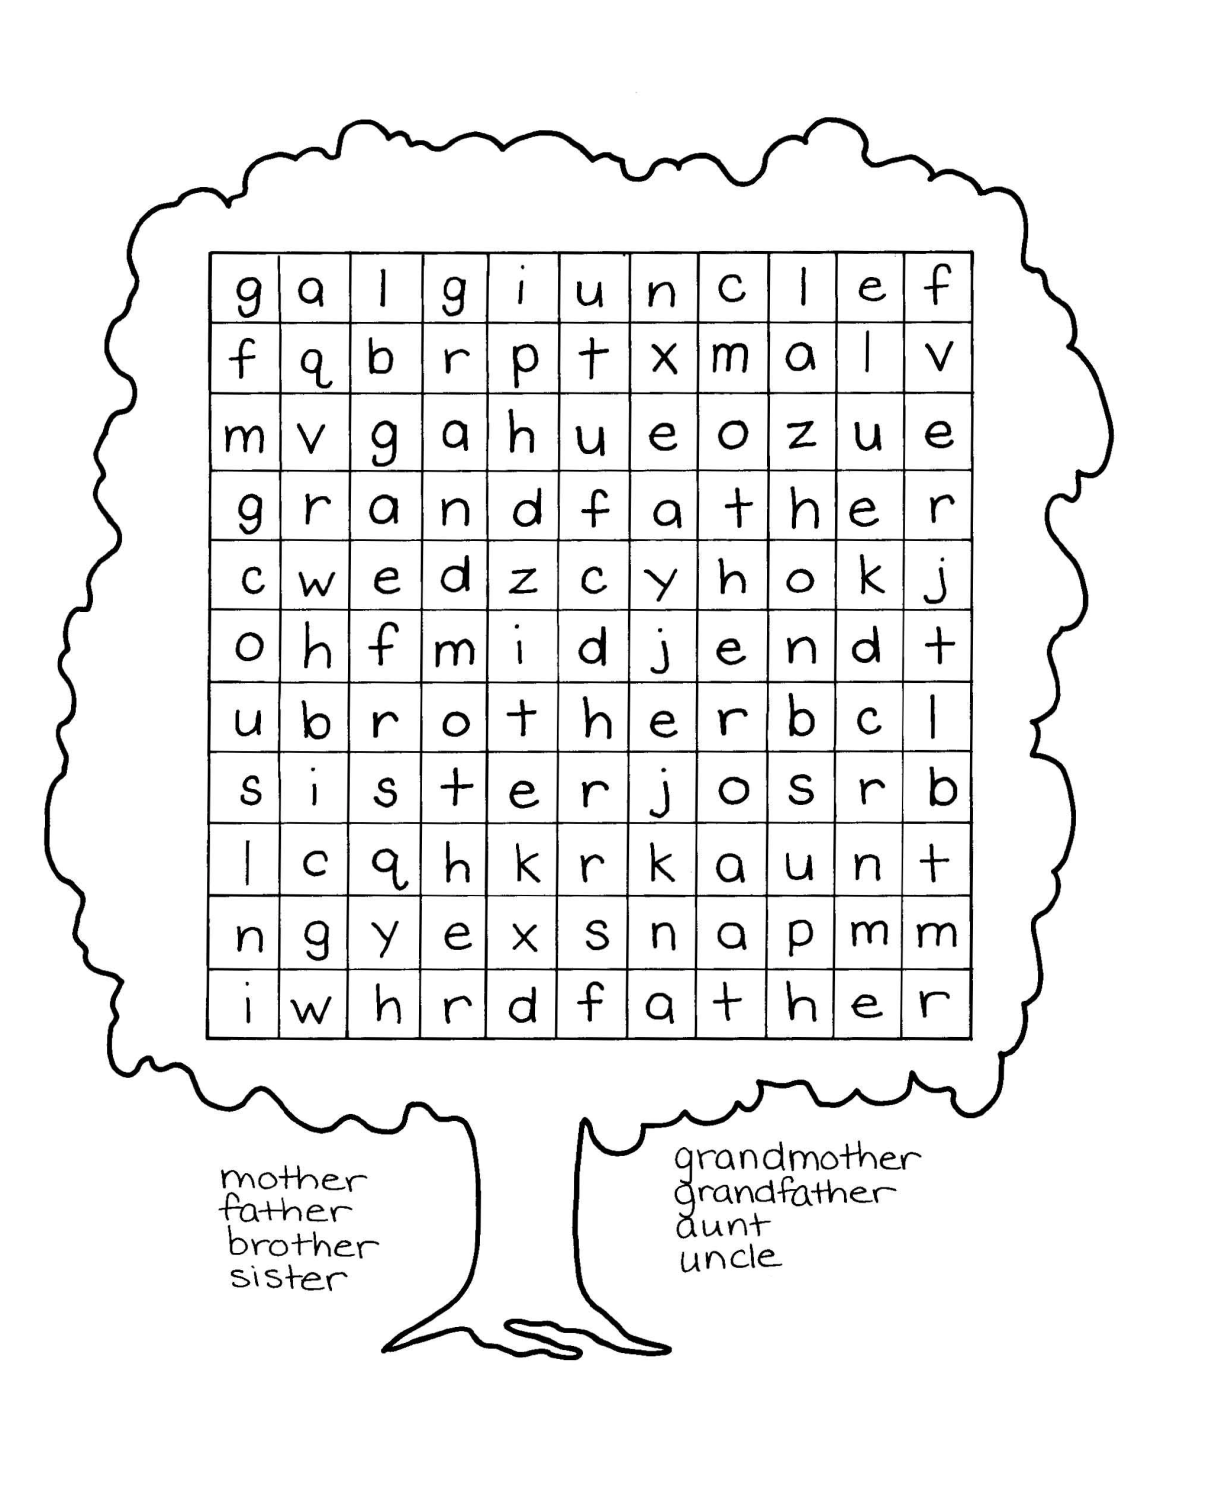 1familywordsearch2.png